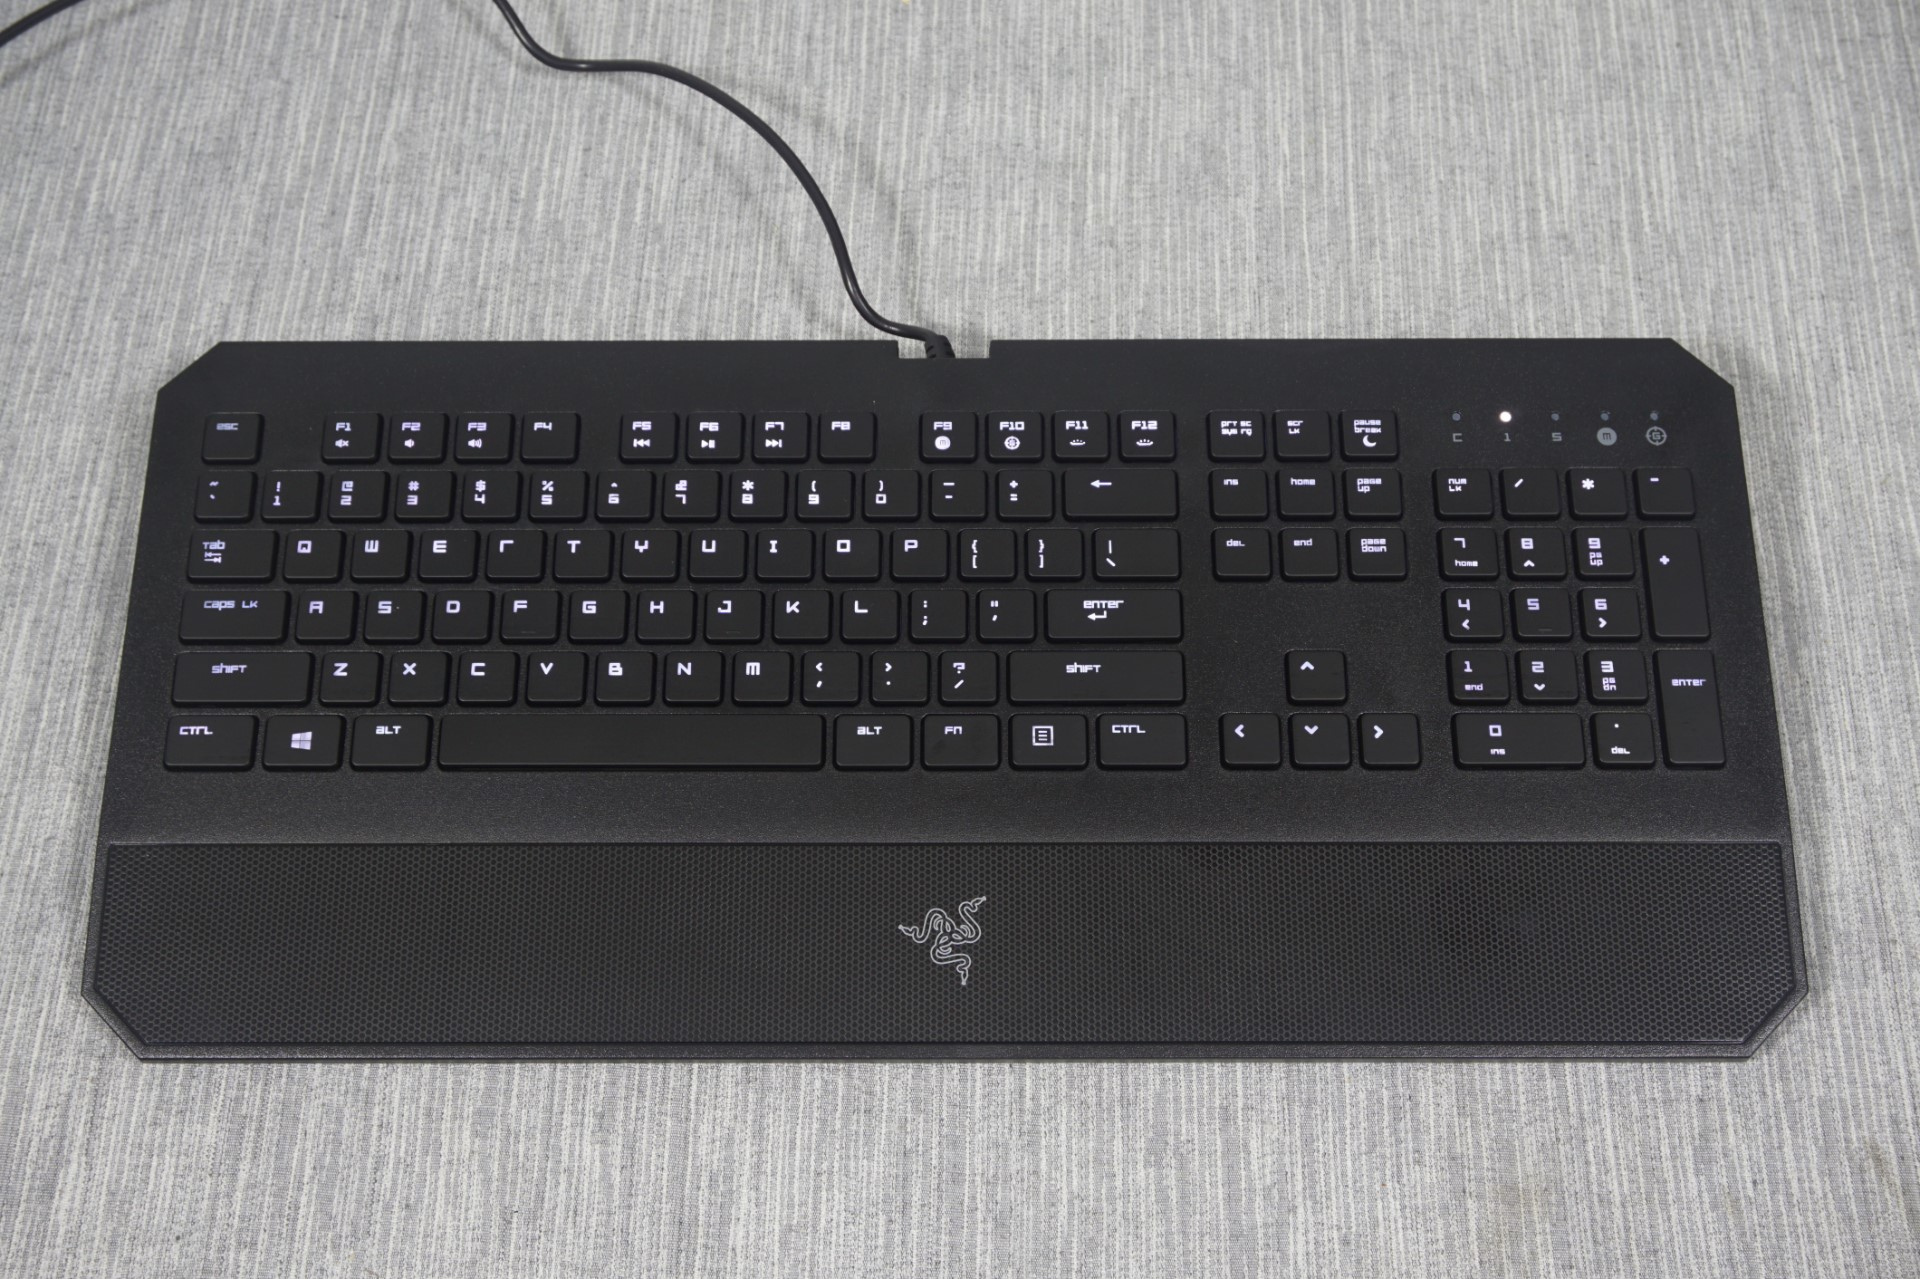 The Razer DeathStalker Chroma Gaming Keyboard Review